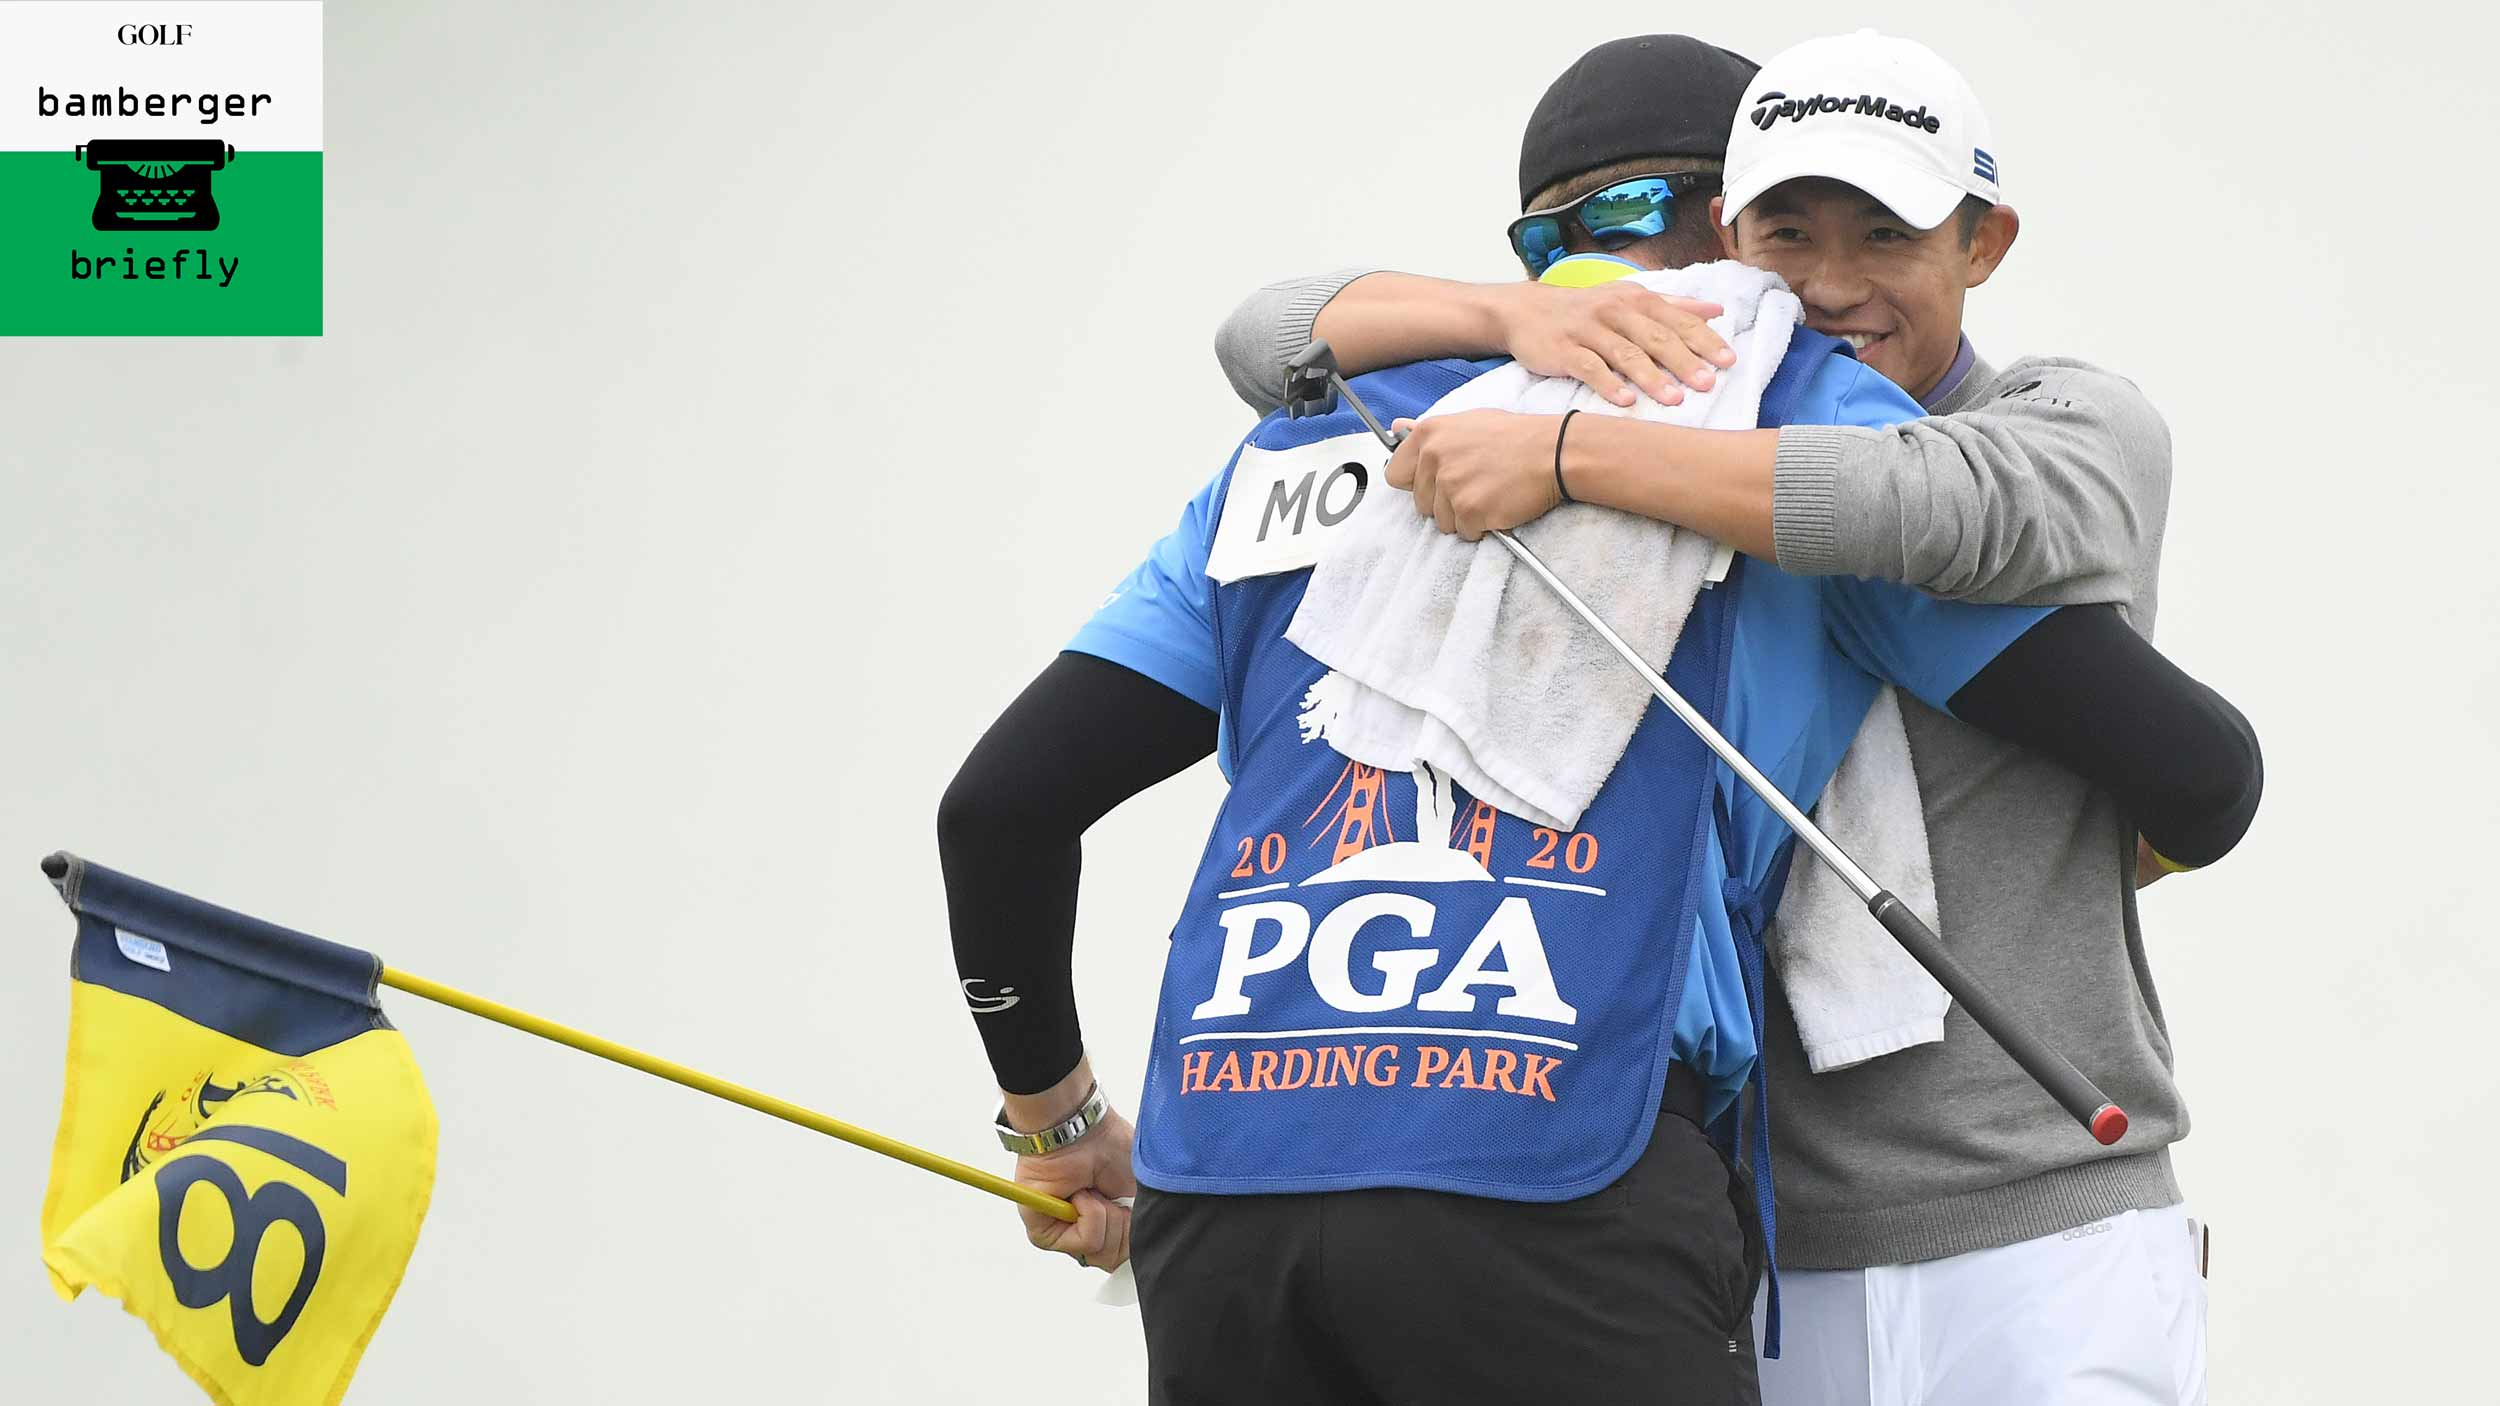 collin morikawa hugs his caddie at pga championship